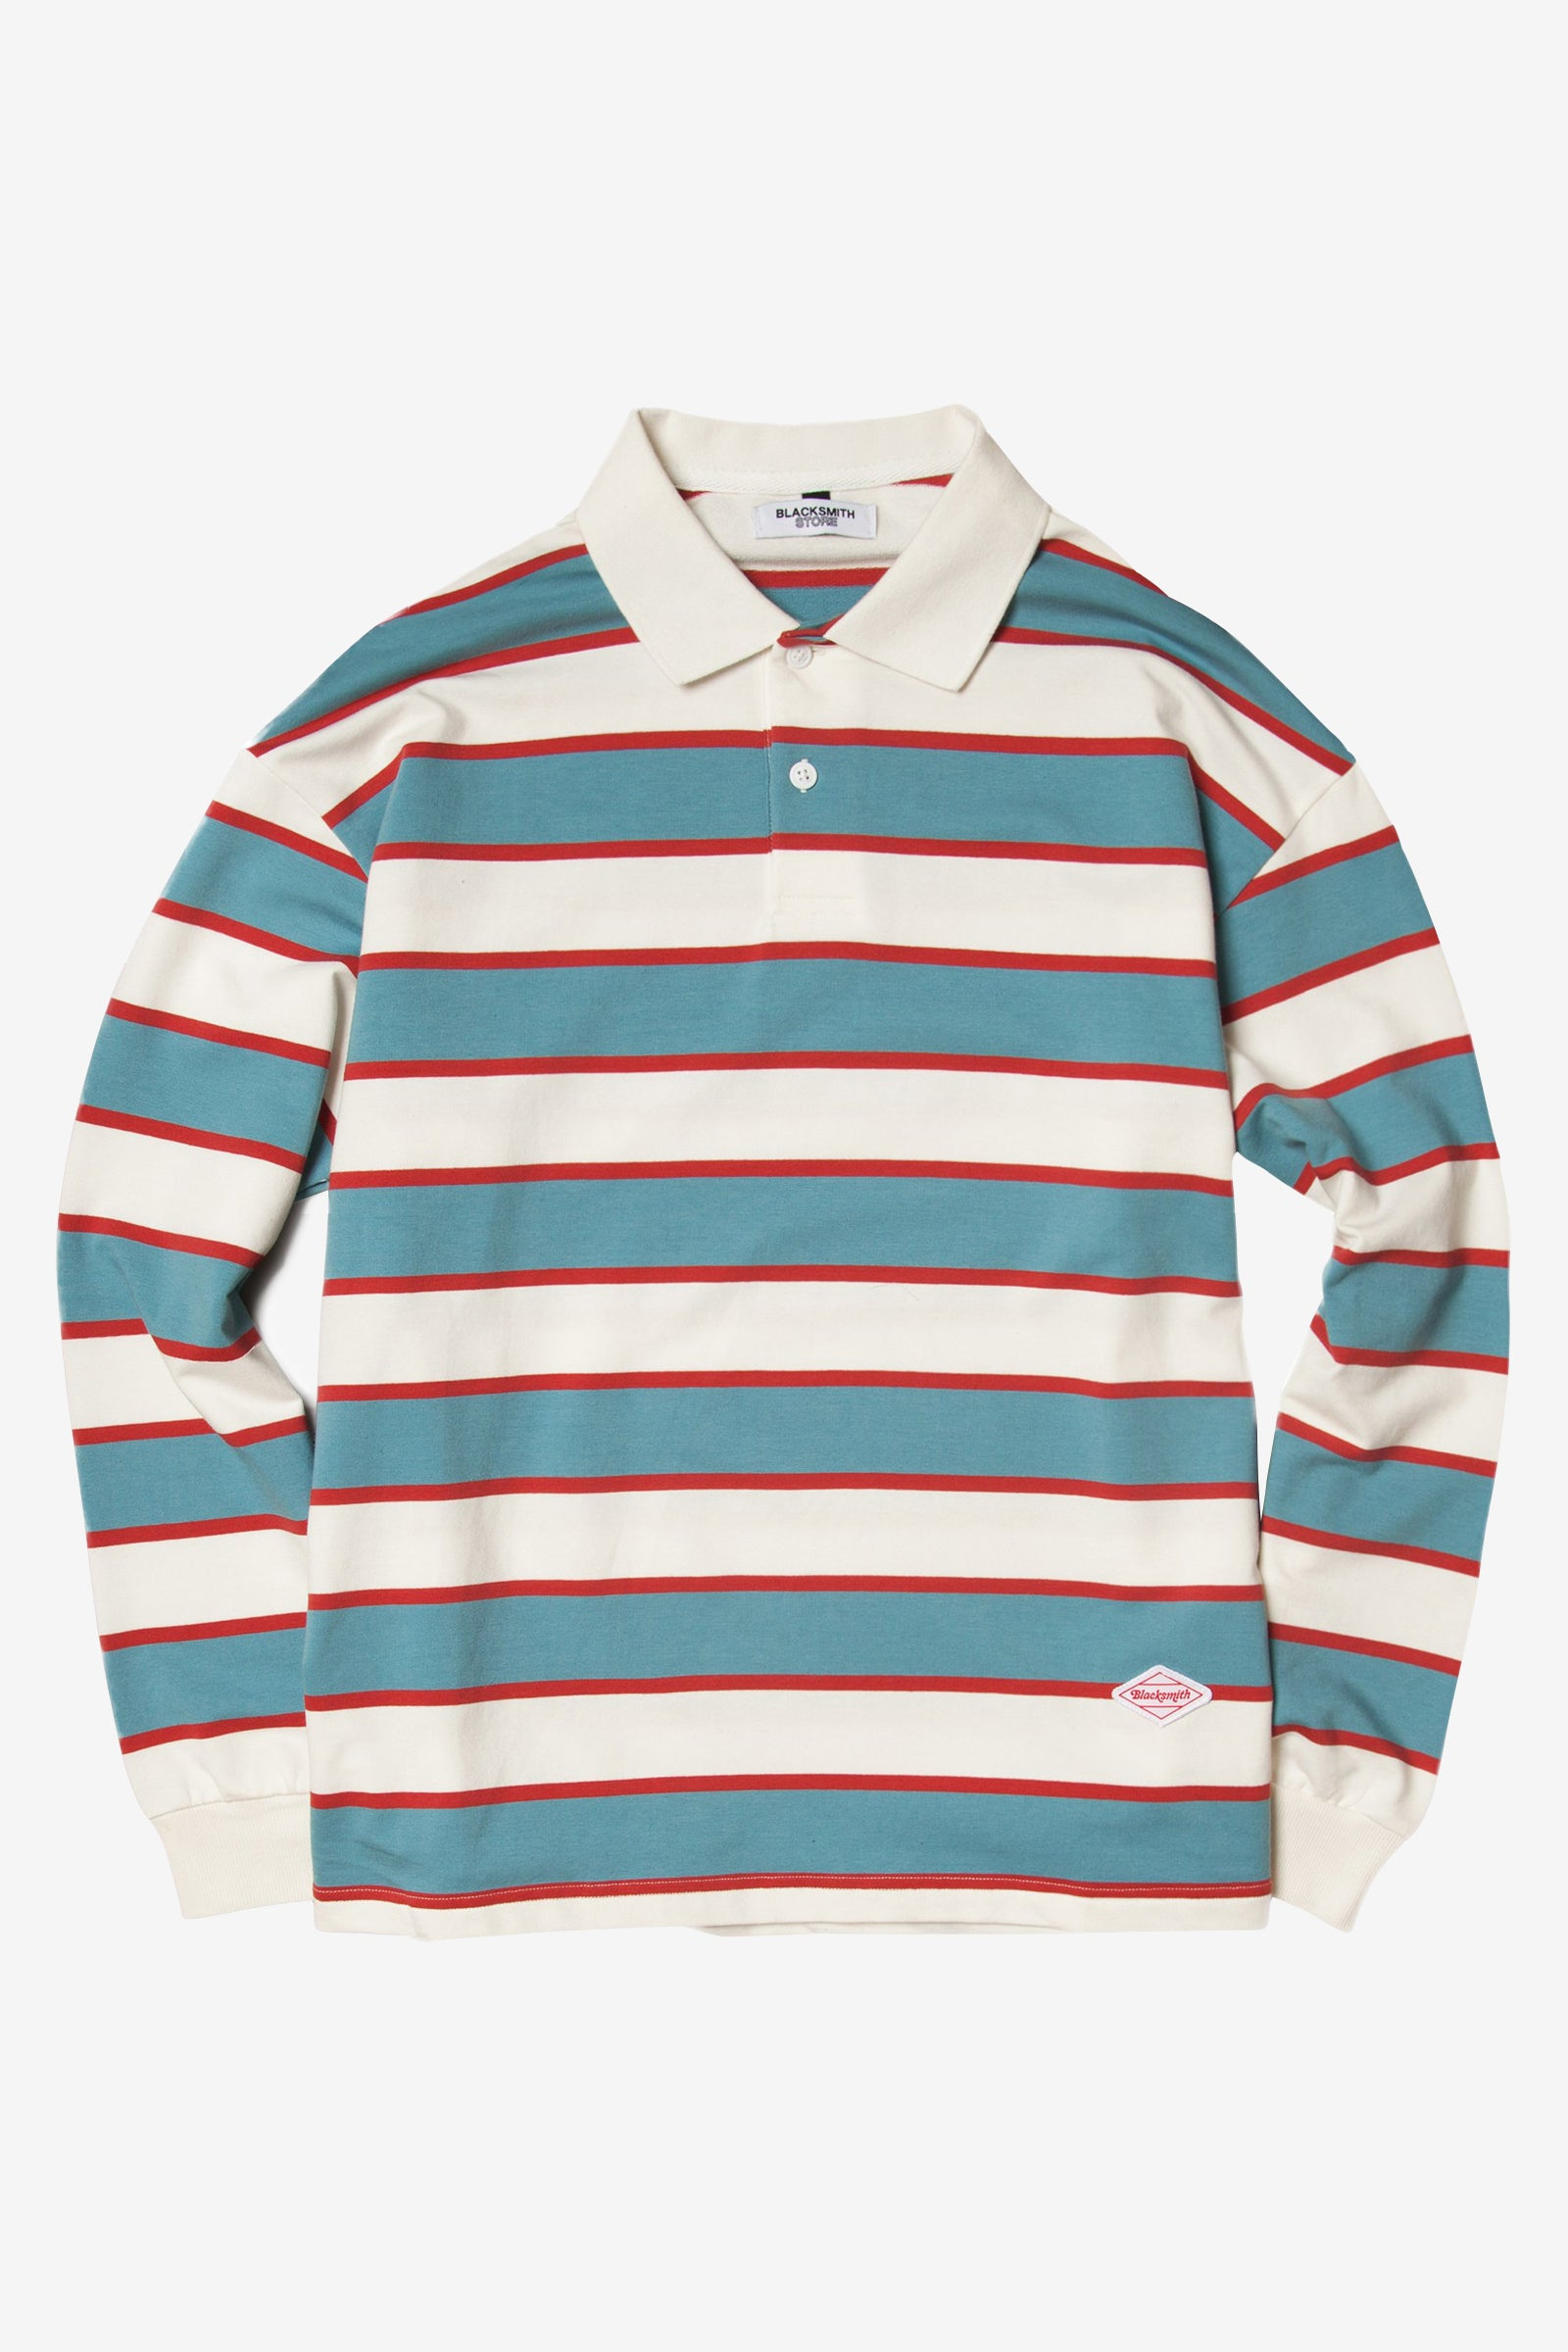 Blacksmith - Striped Long Sleeve Polo - White